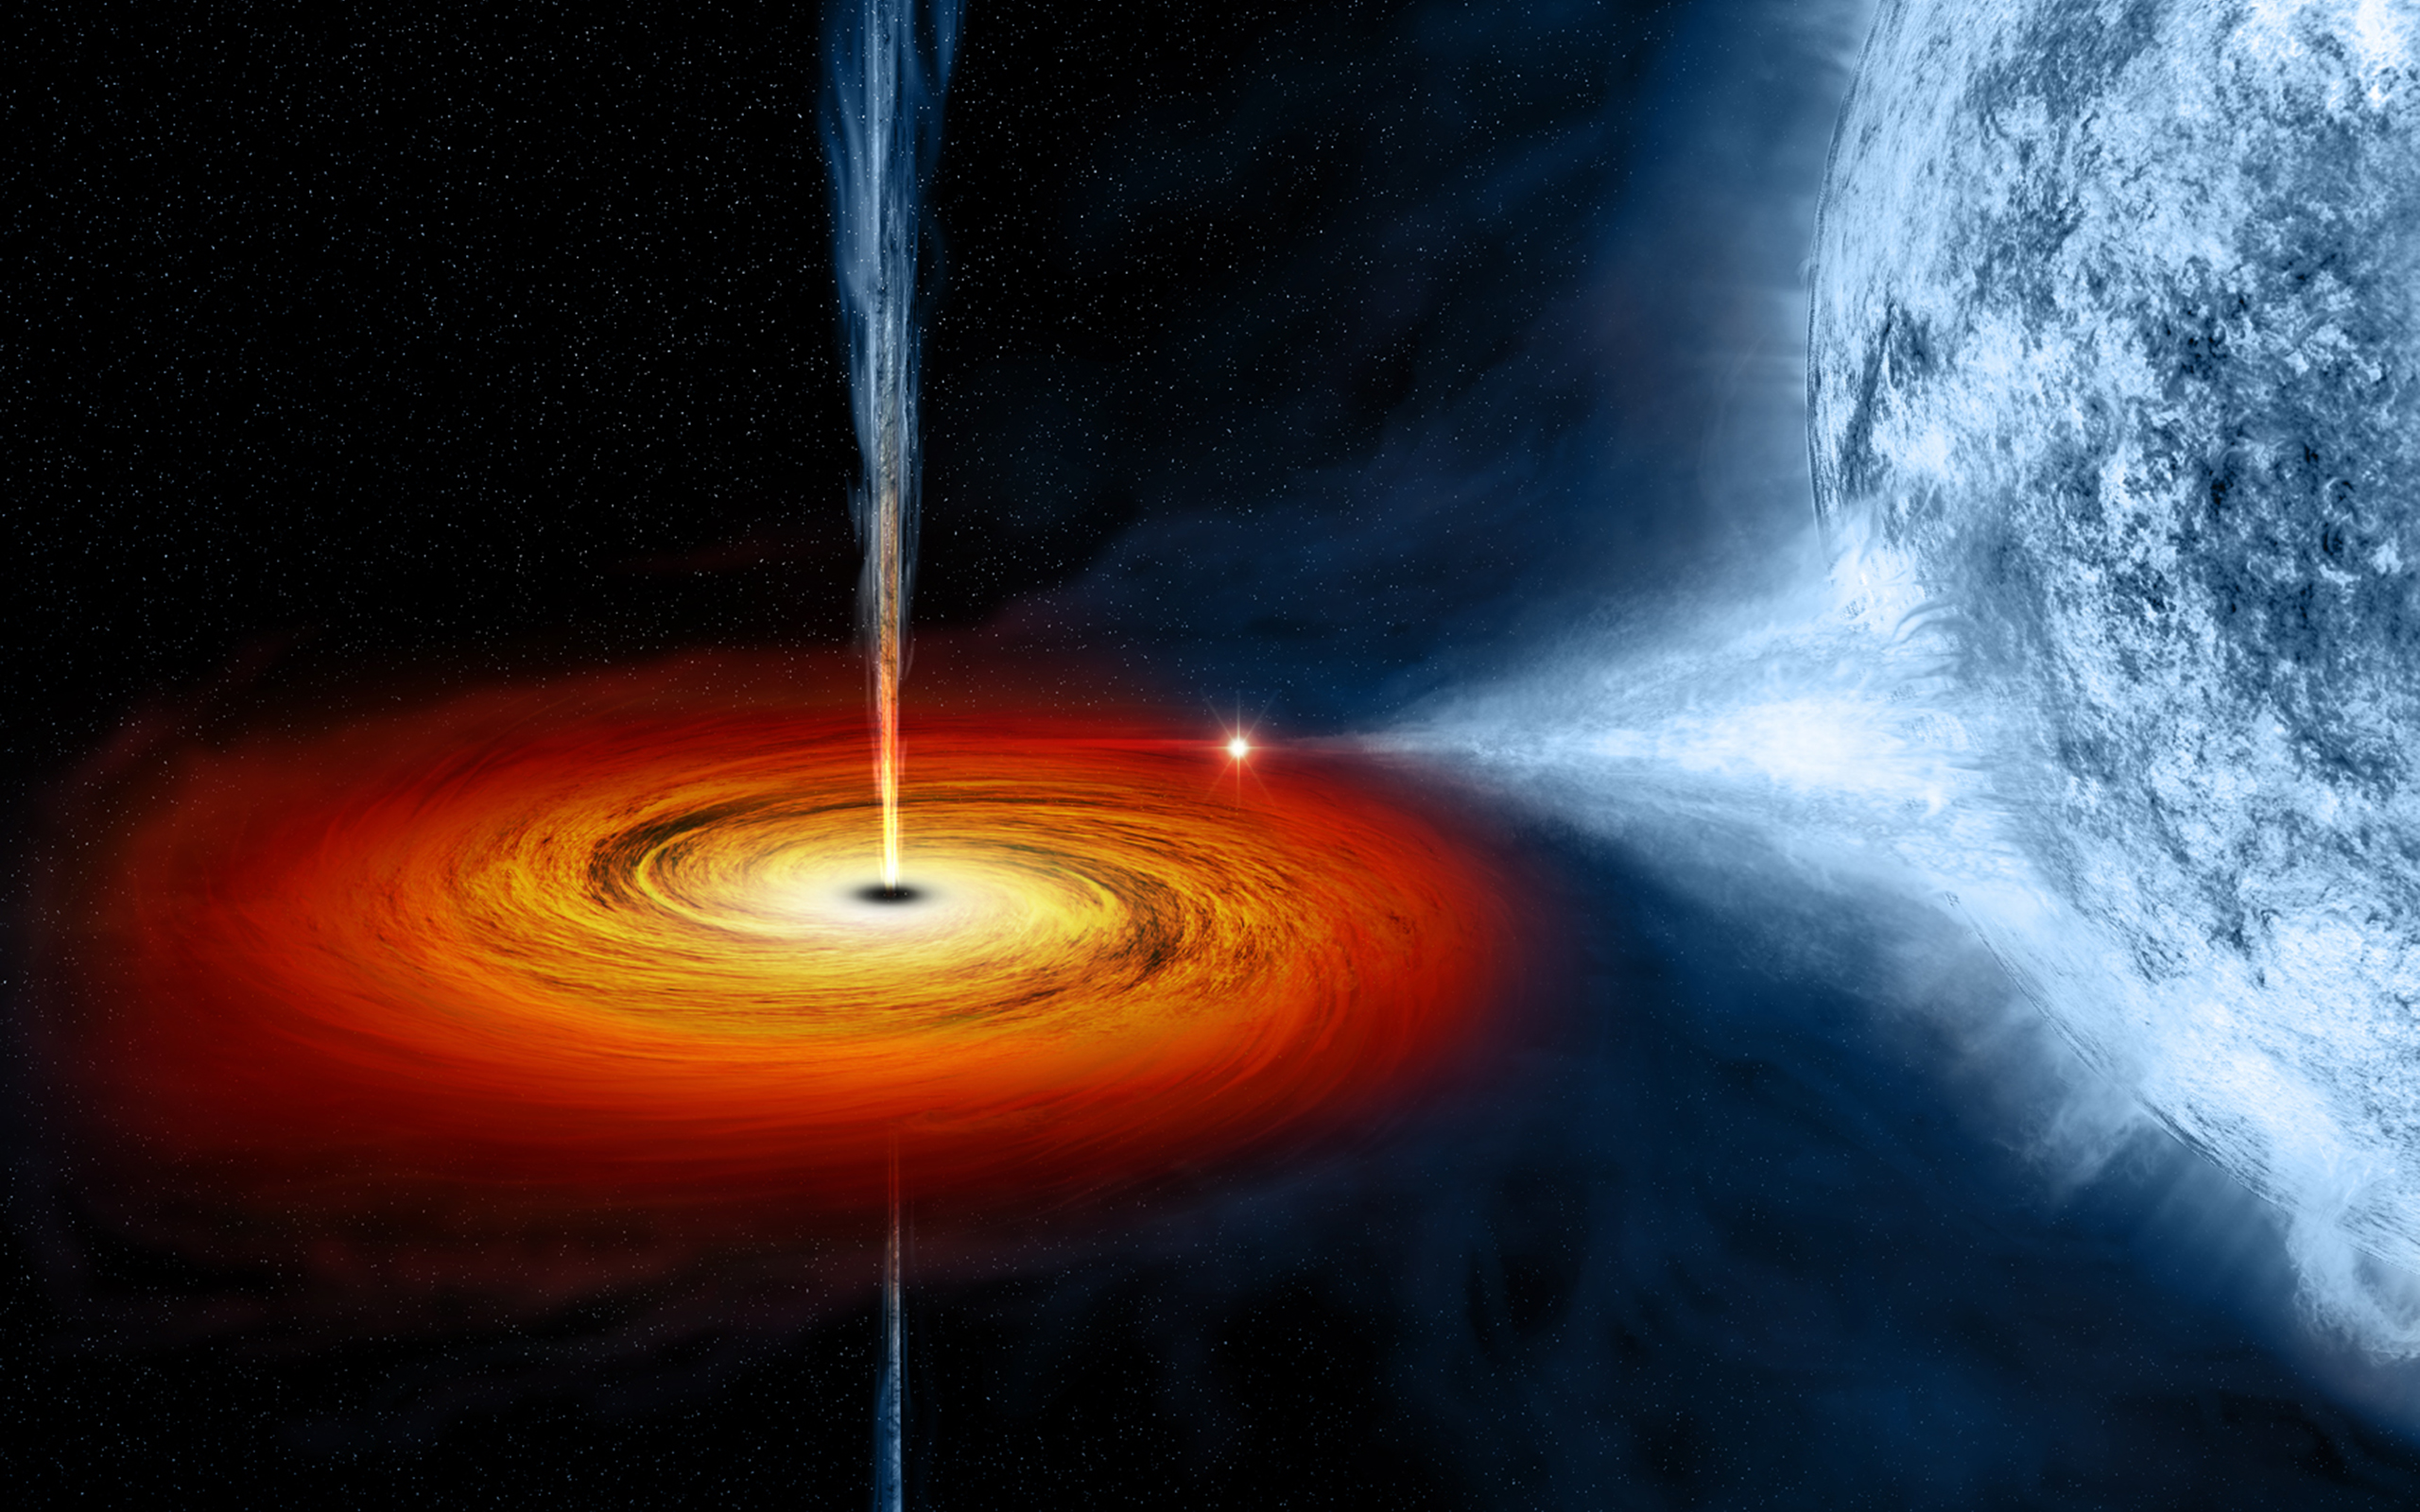 31 Black Hole HD Wallpapers | Backgrounds - Wallpaper Abyss